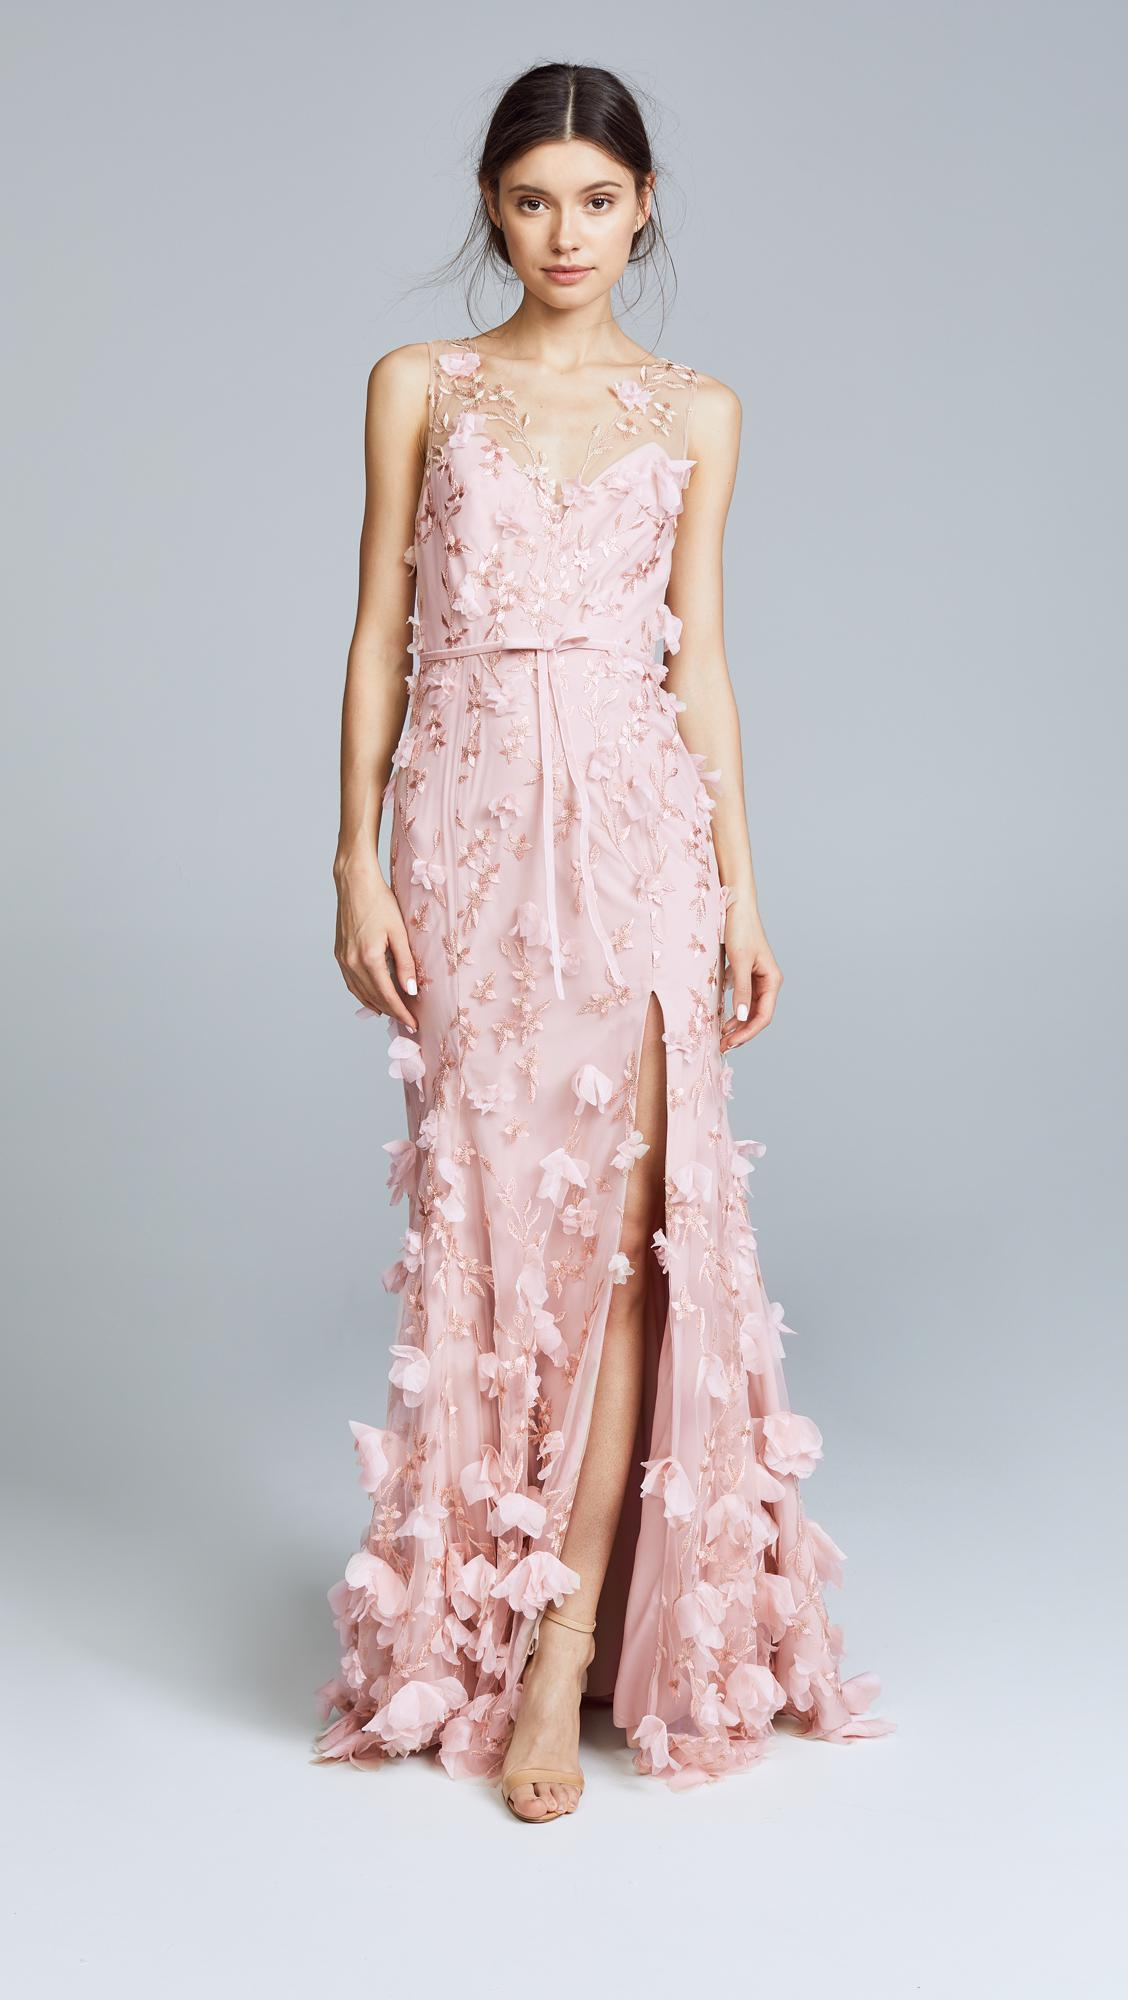 08a96e40f6465 Marchesa notte Embroidered Gown With 3d Flowers in Pink - Lyst